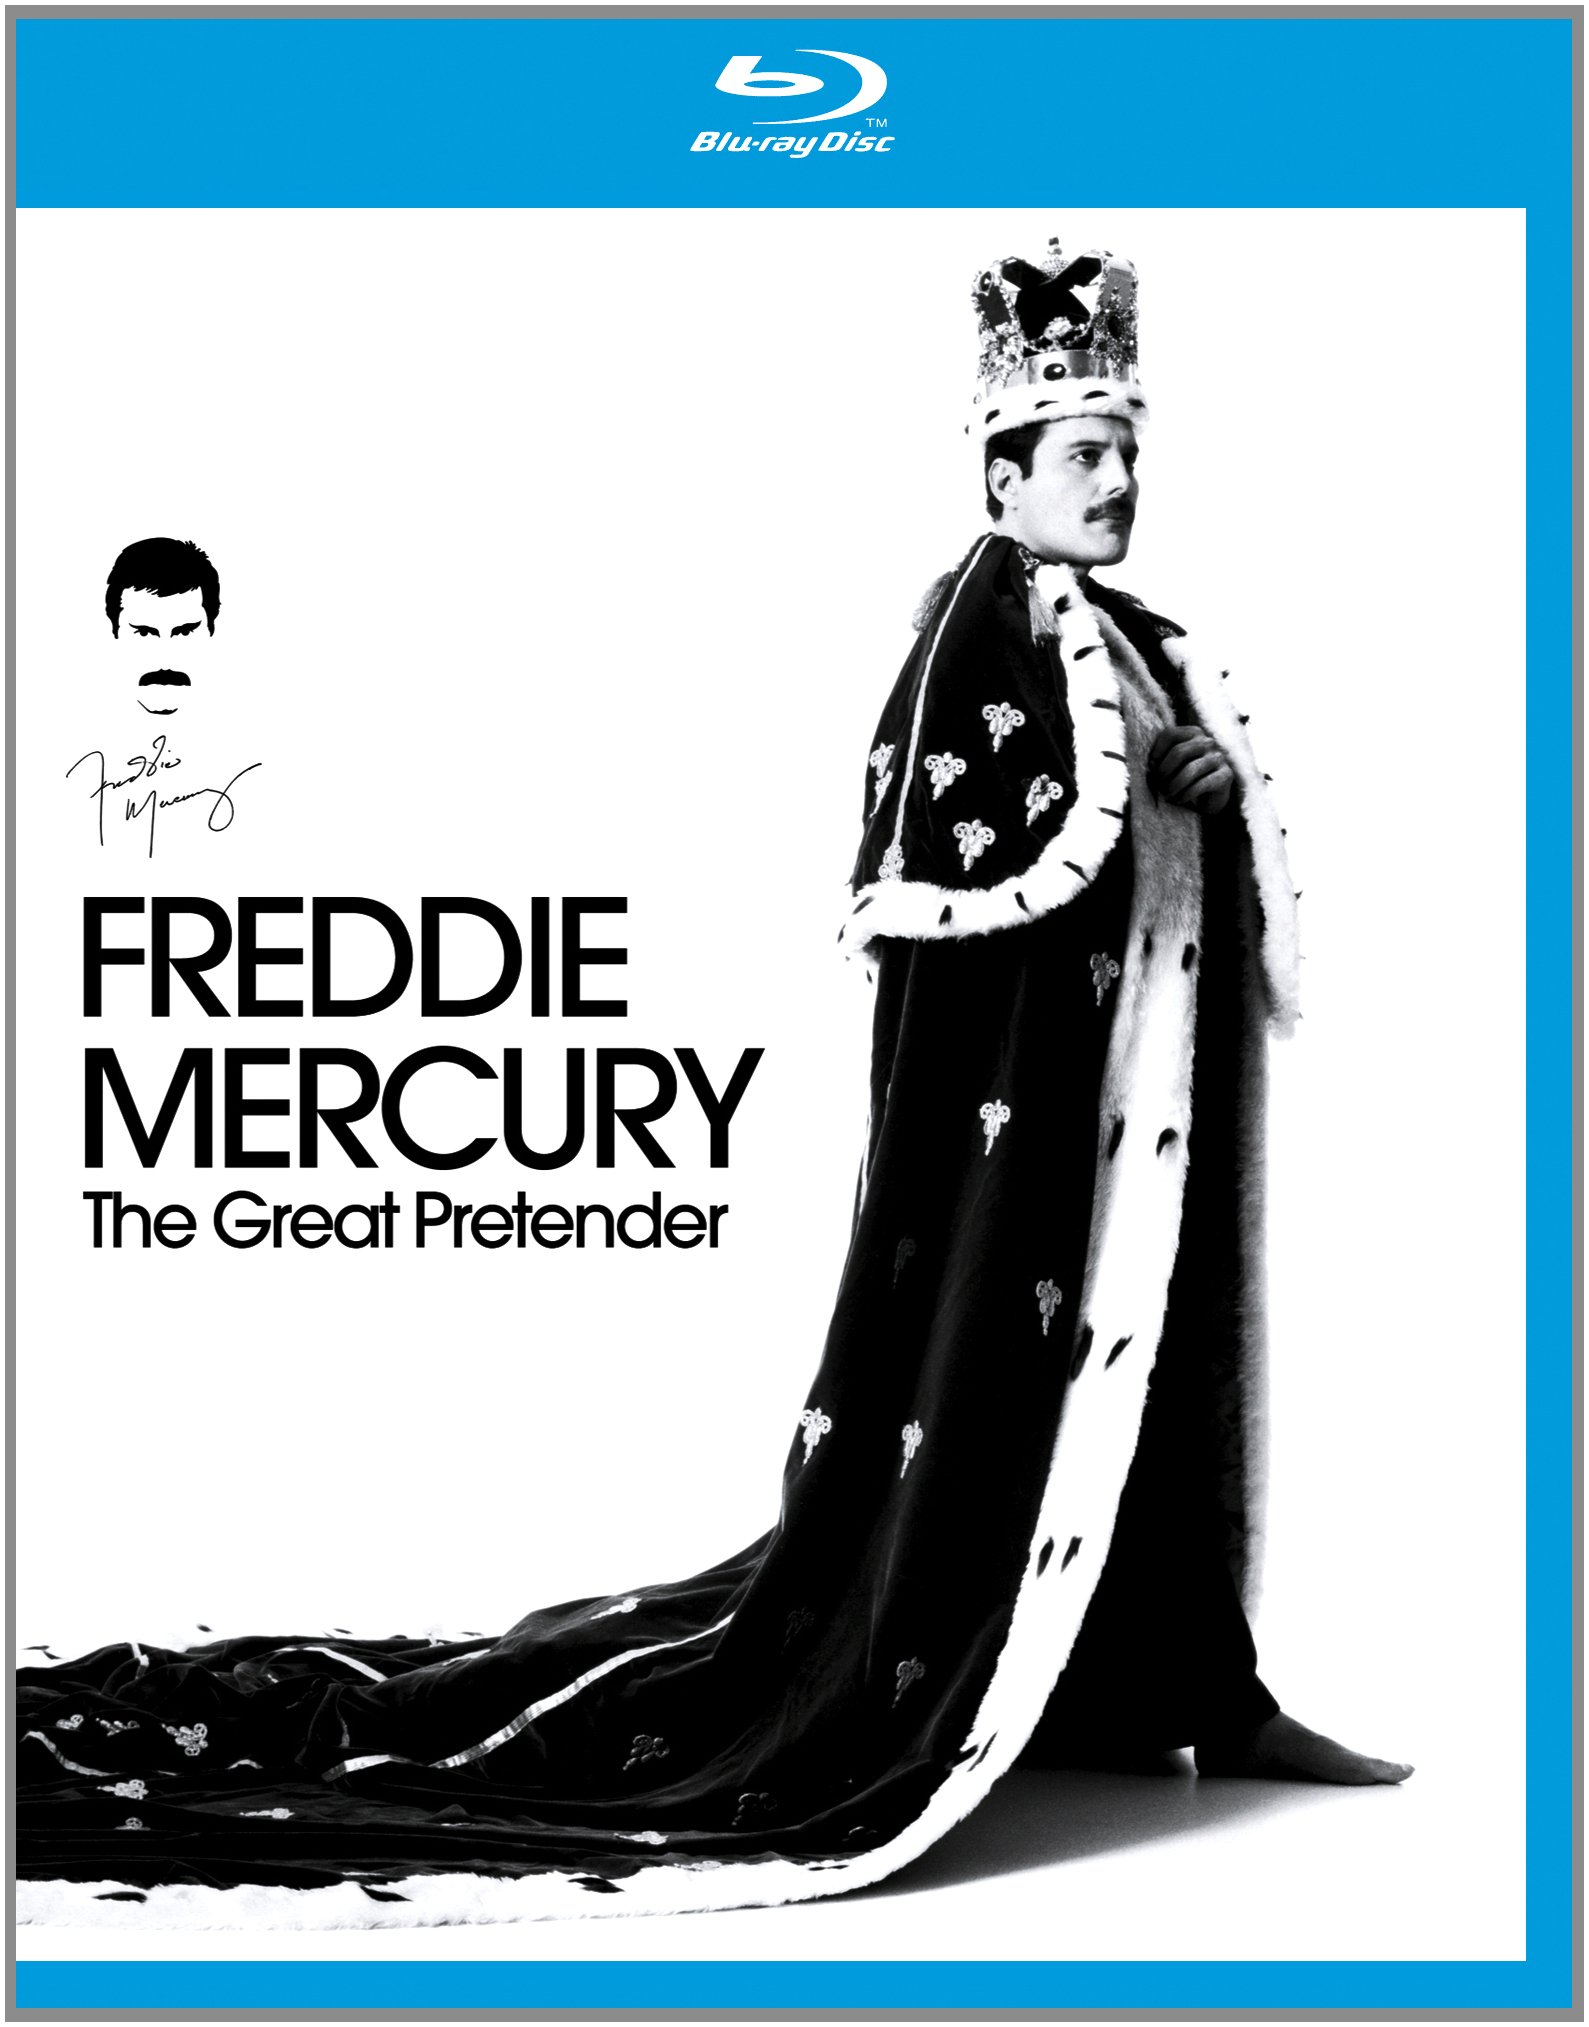 Blu-ray : Freddie Mercury - The Great Pretender (Blu-ray)